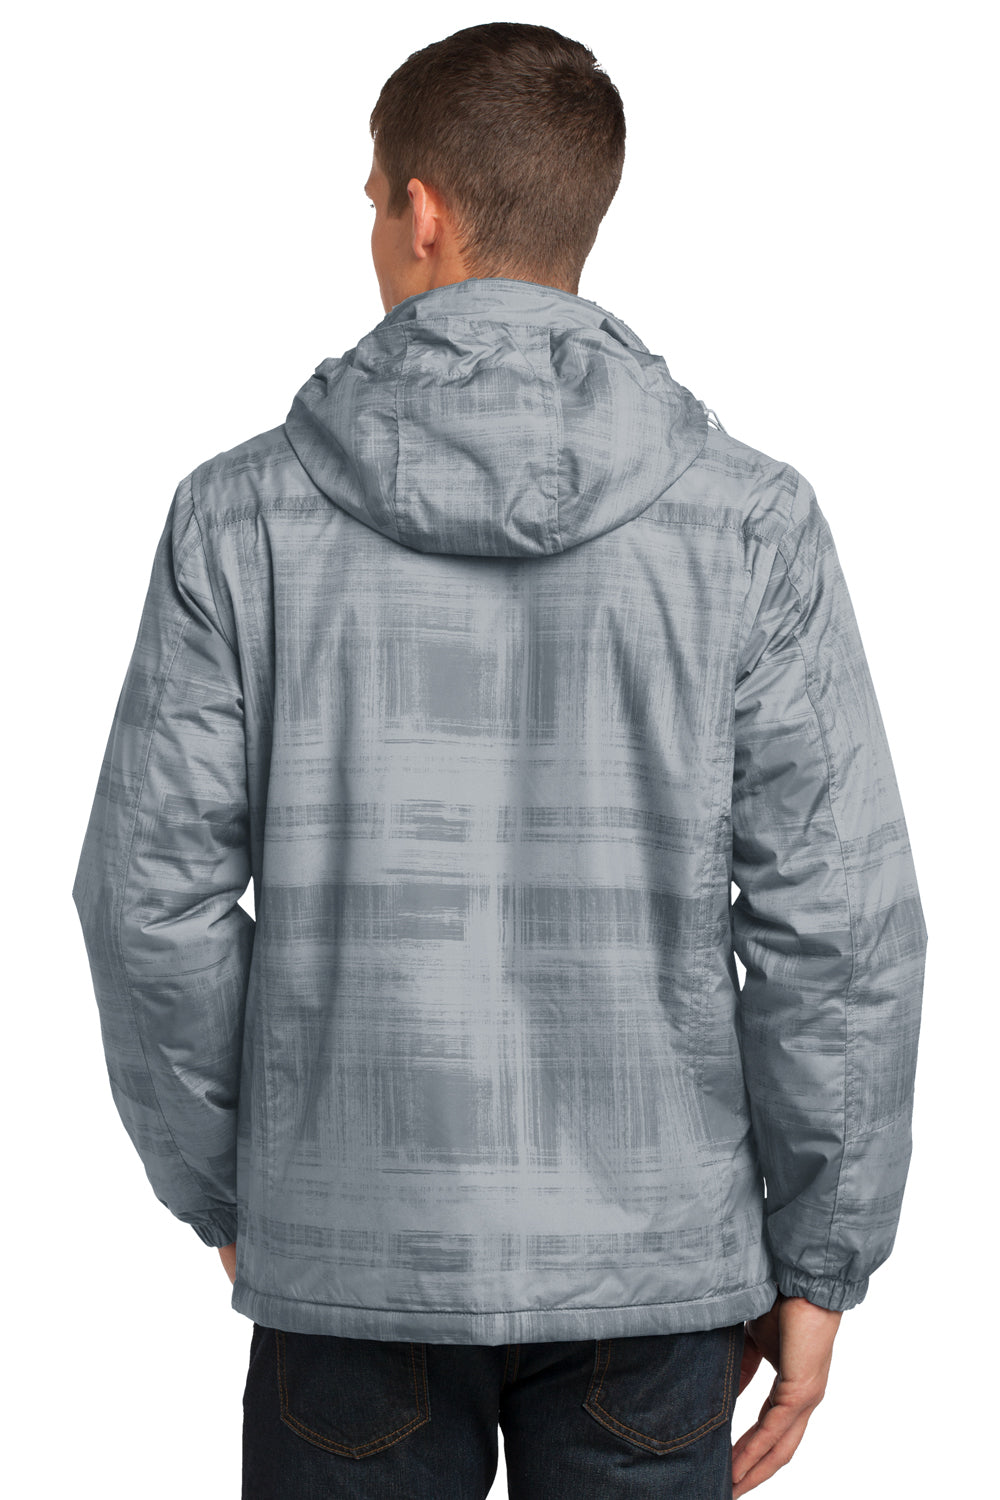 Port Authority J320 Mens Brushstroke Wind & Water Resistant Full Zip Hooded Jacket Grey Brushstroke Back